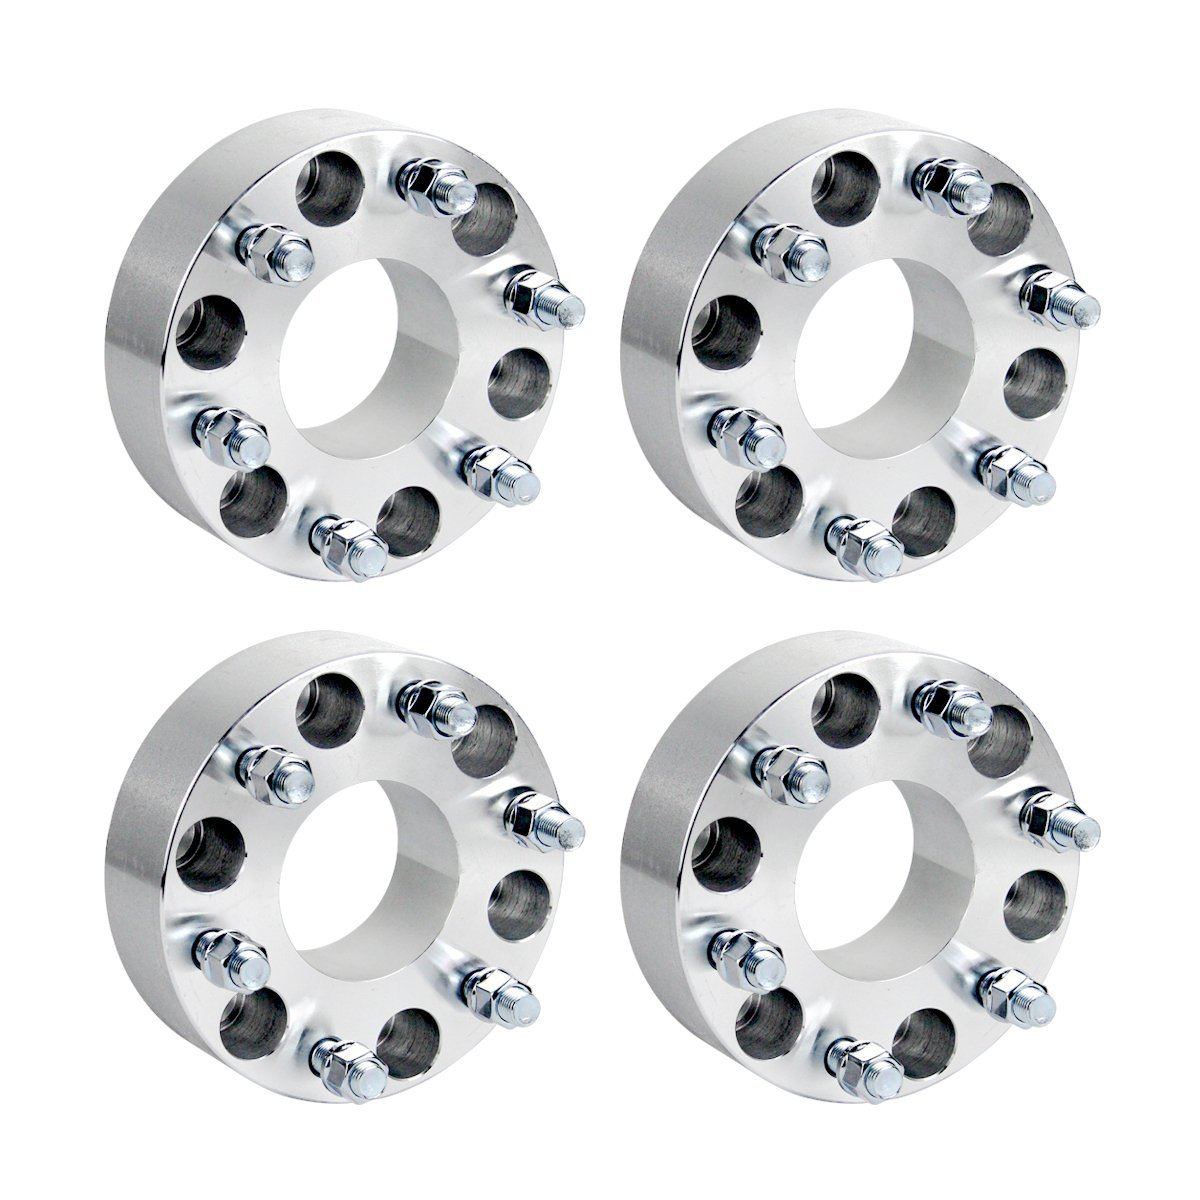 2 X PC HUBCENTRIC WHEEL SPACERS ADAPTER 5x114.3 66.1 CB 9MM A PAIR 5X4.5